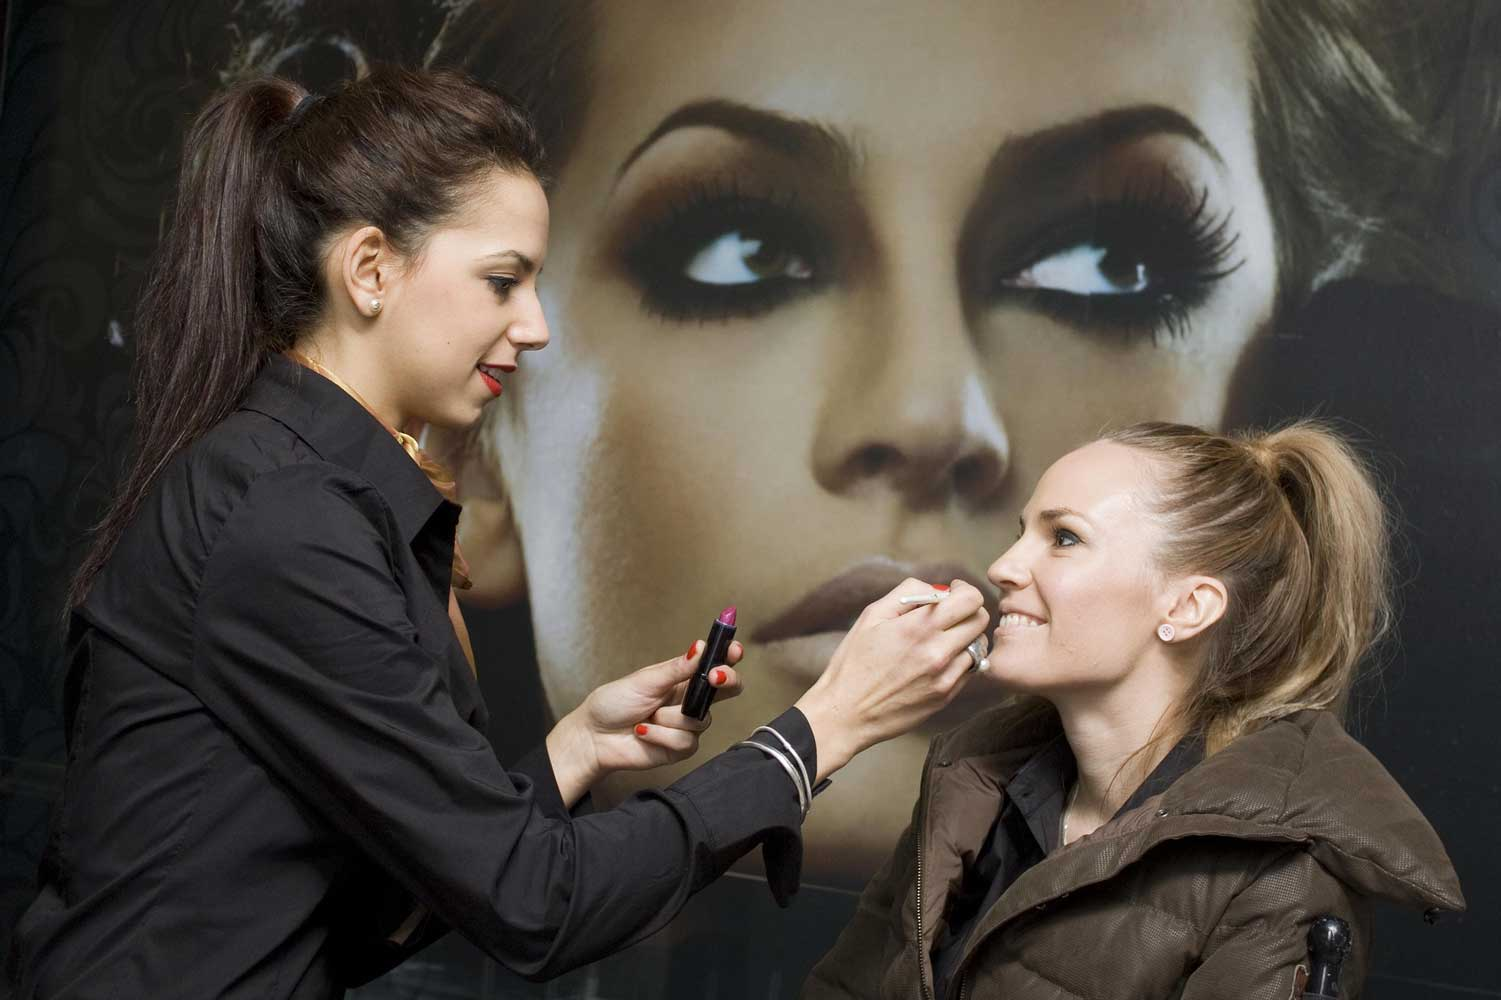 steps how to become professional makeup artist job career